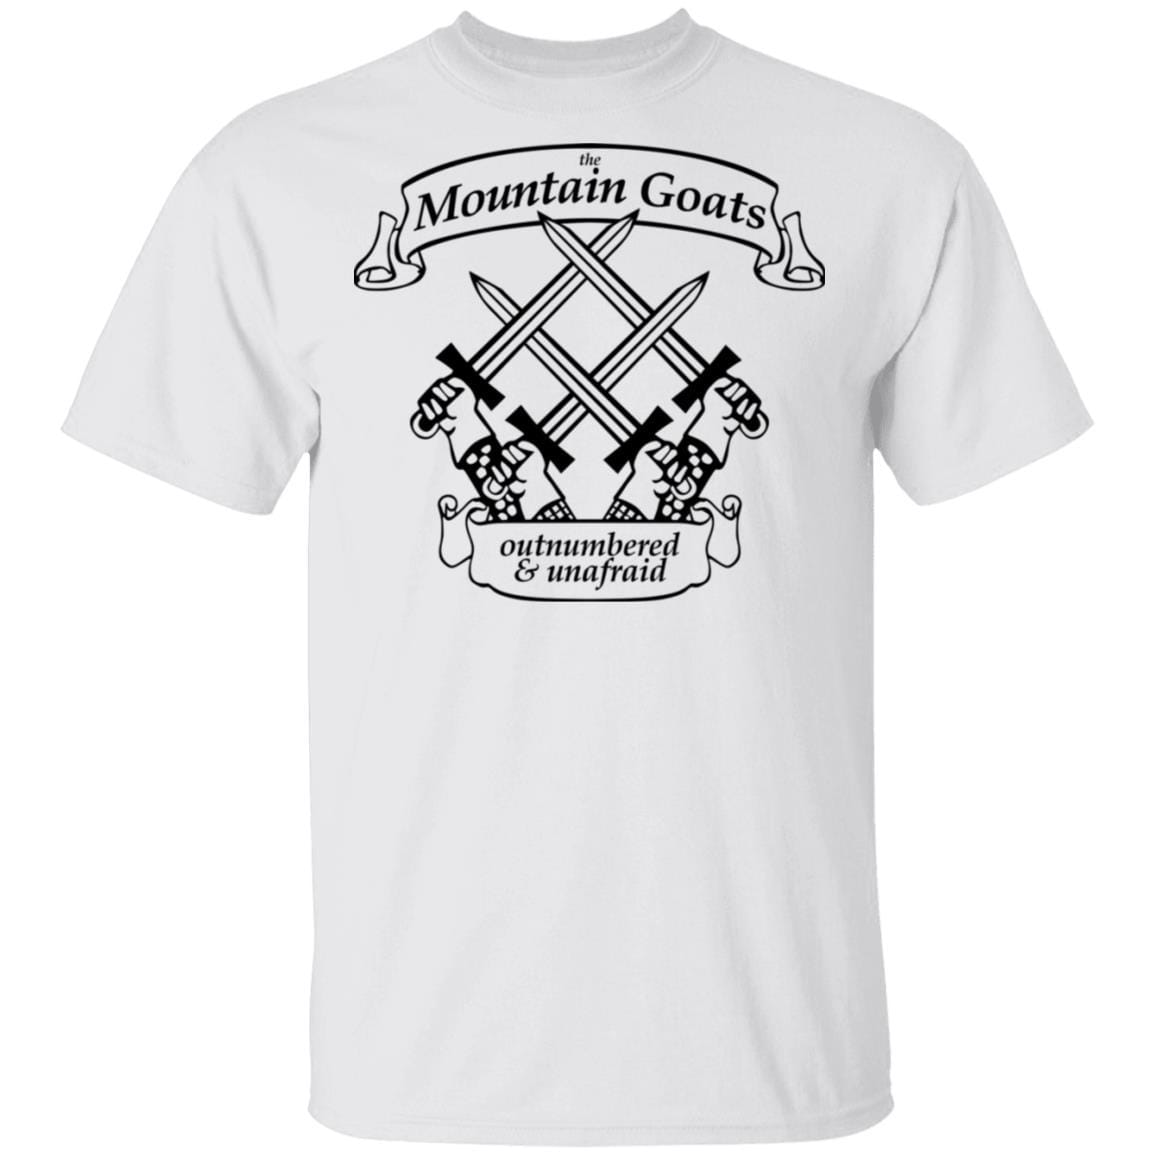 The Mountain Goats Outnumbered And Unafraid T-Shirts, Hoodies 1049-9974-92948169-48300 - Tee Ript